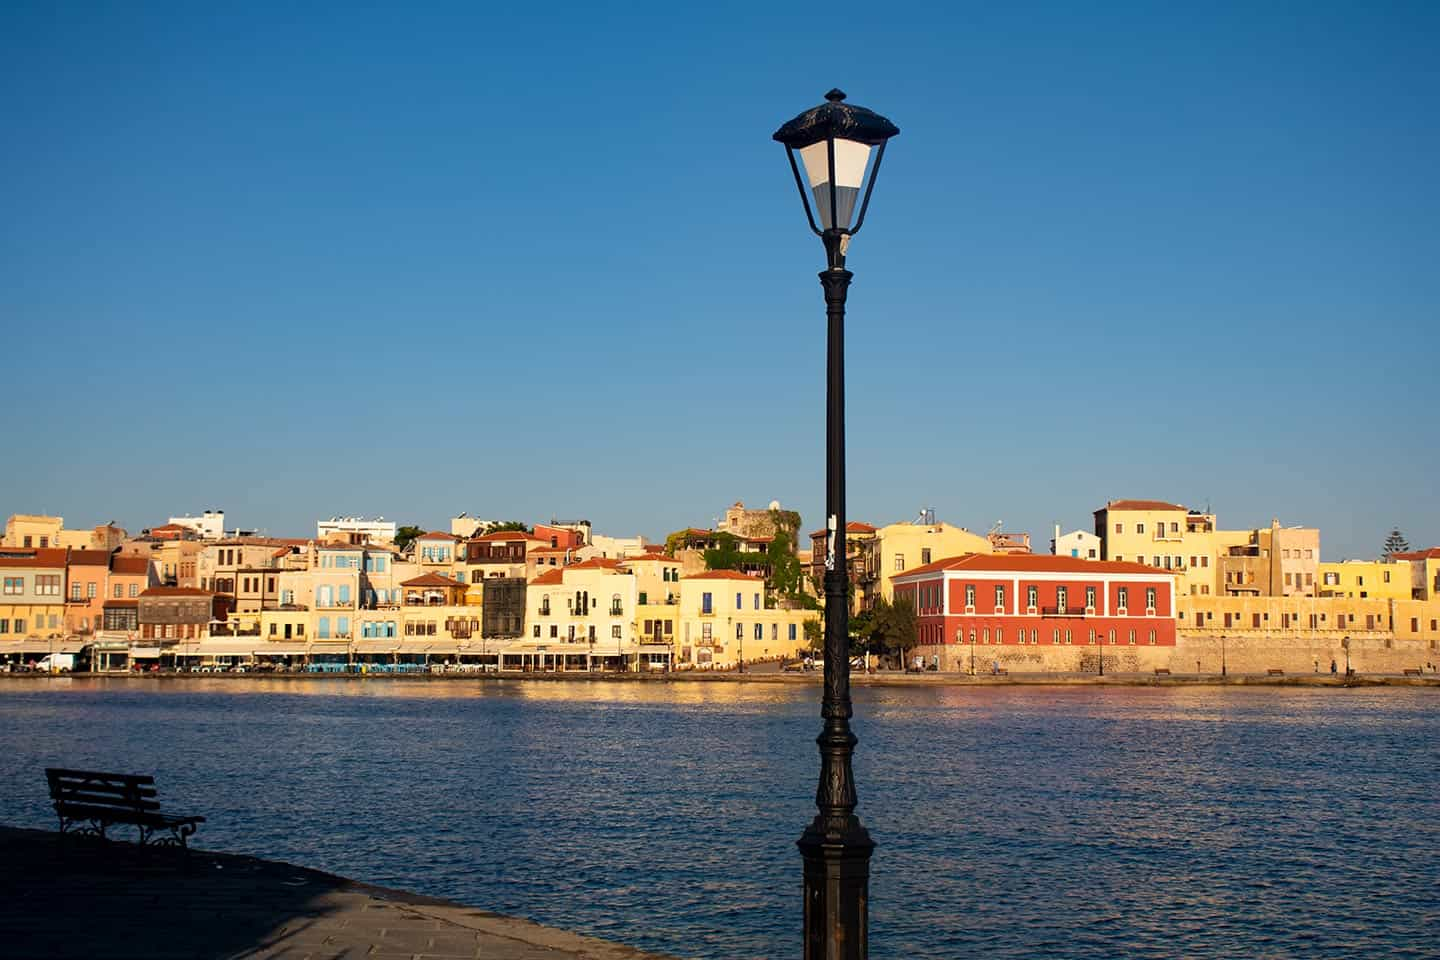 Image of Chania harbour with a lamp in the foreground Crete Greece